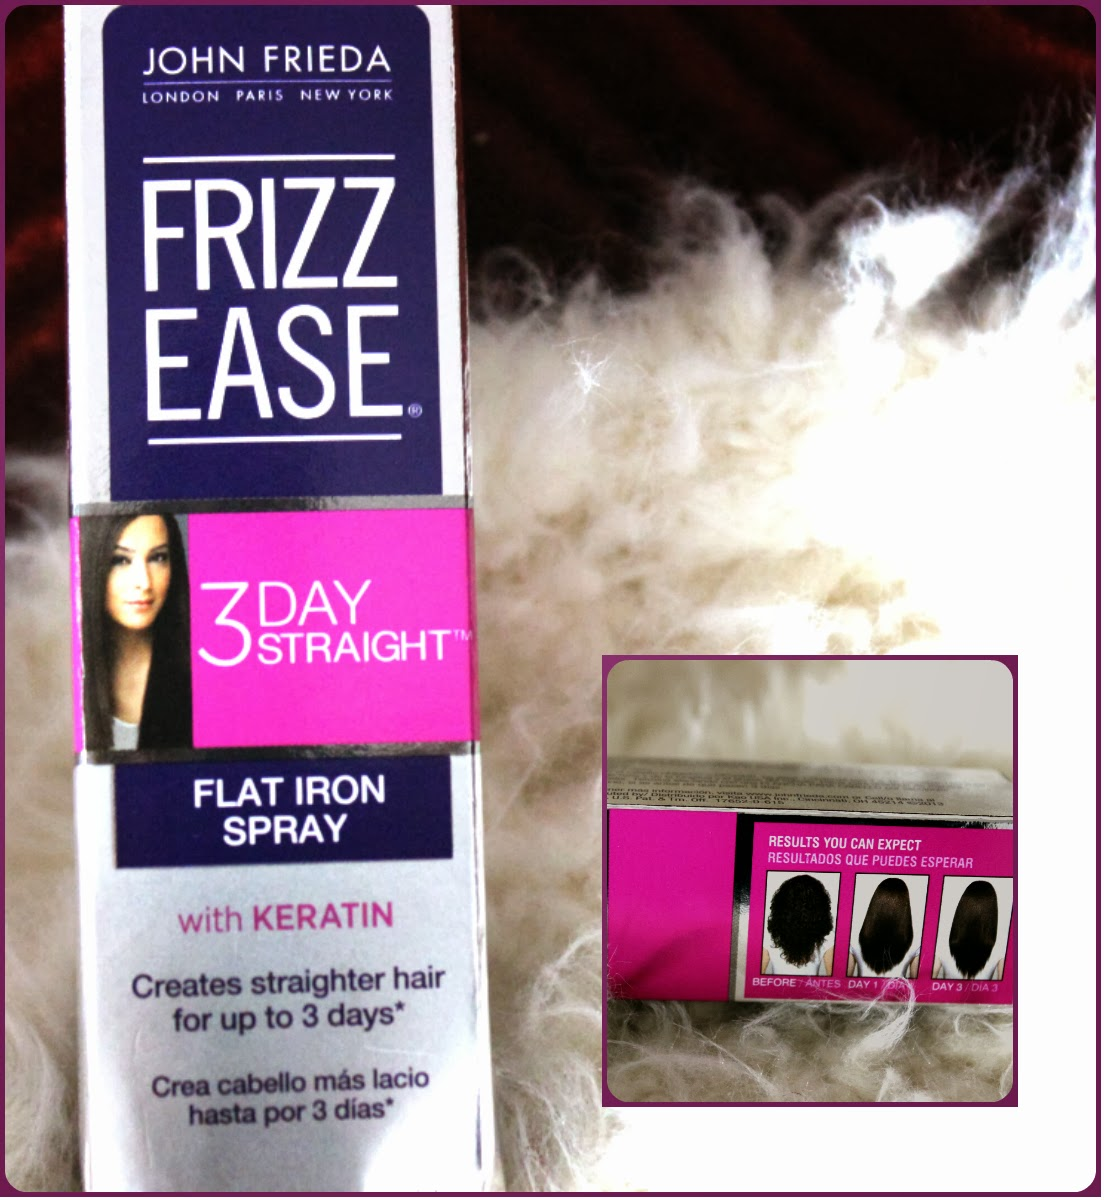 John Frieda Frizz Ease 3-Day Straight Flat Iron Spray Review